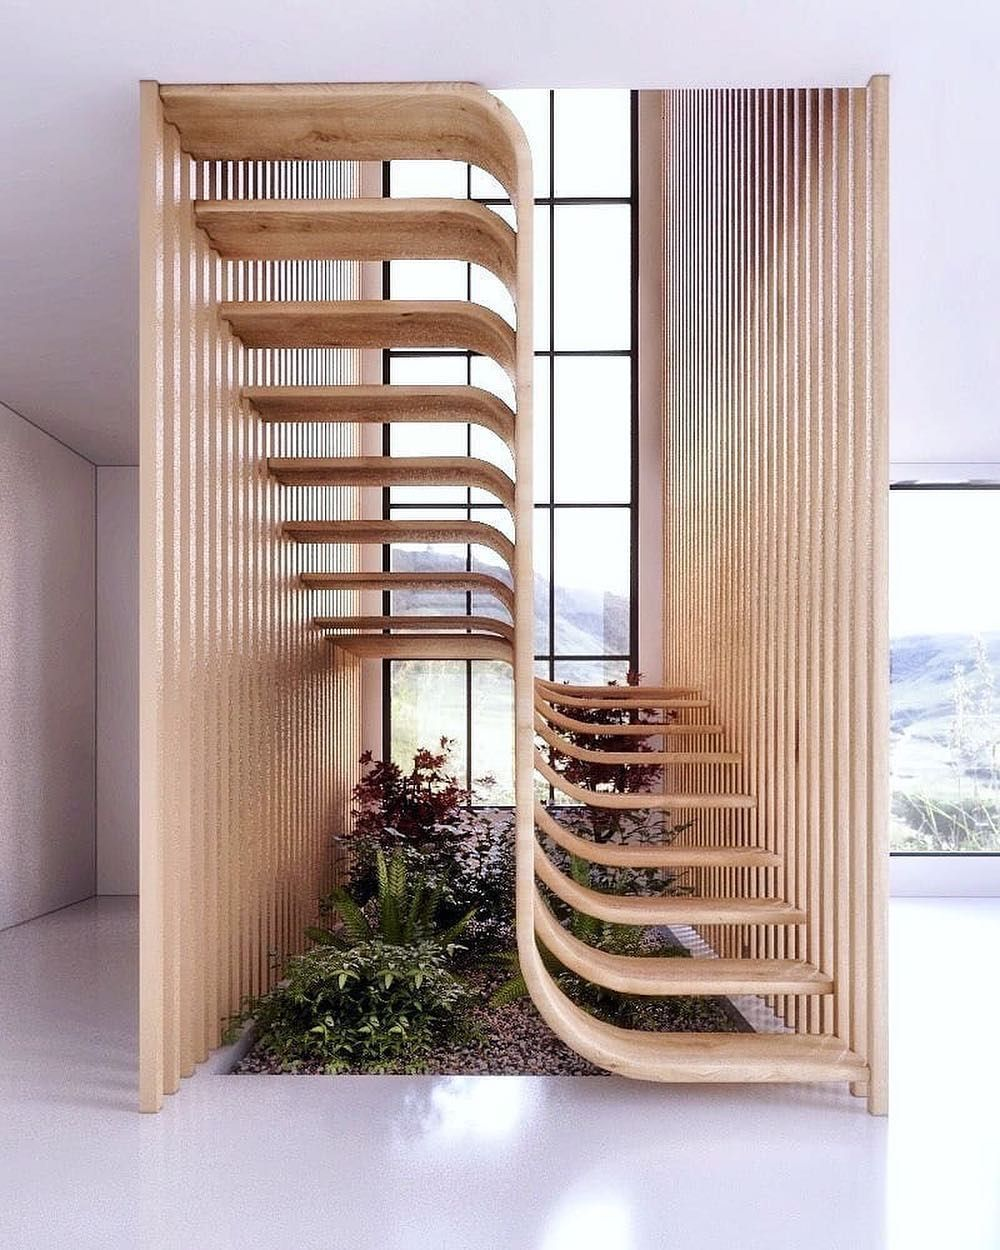 designboom magazine on instagram u201c staircase with style by rh pinterest com